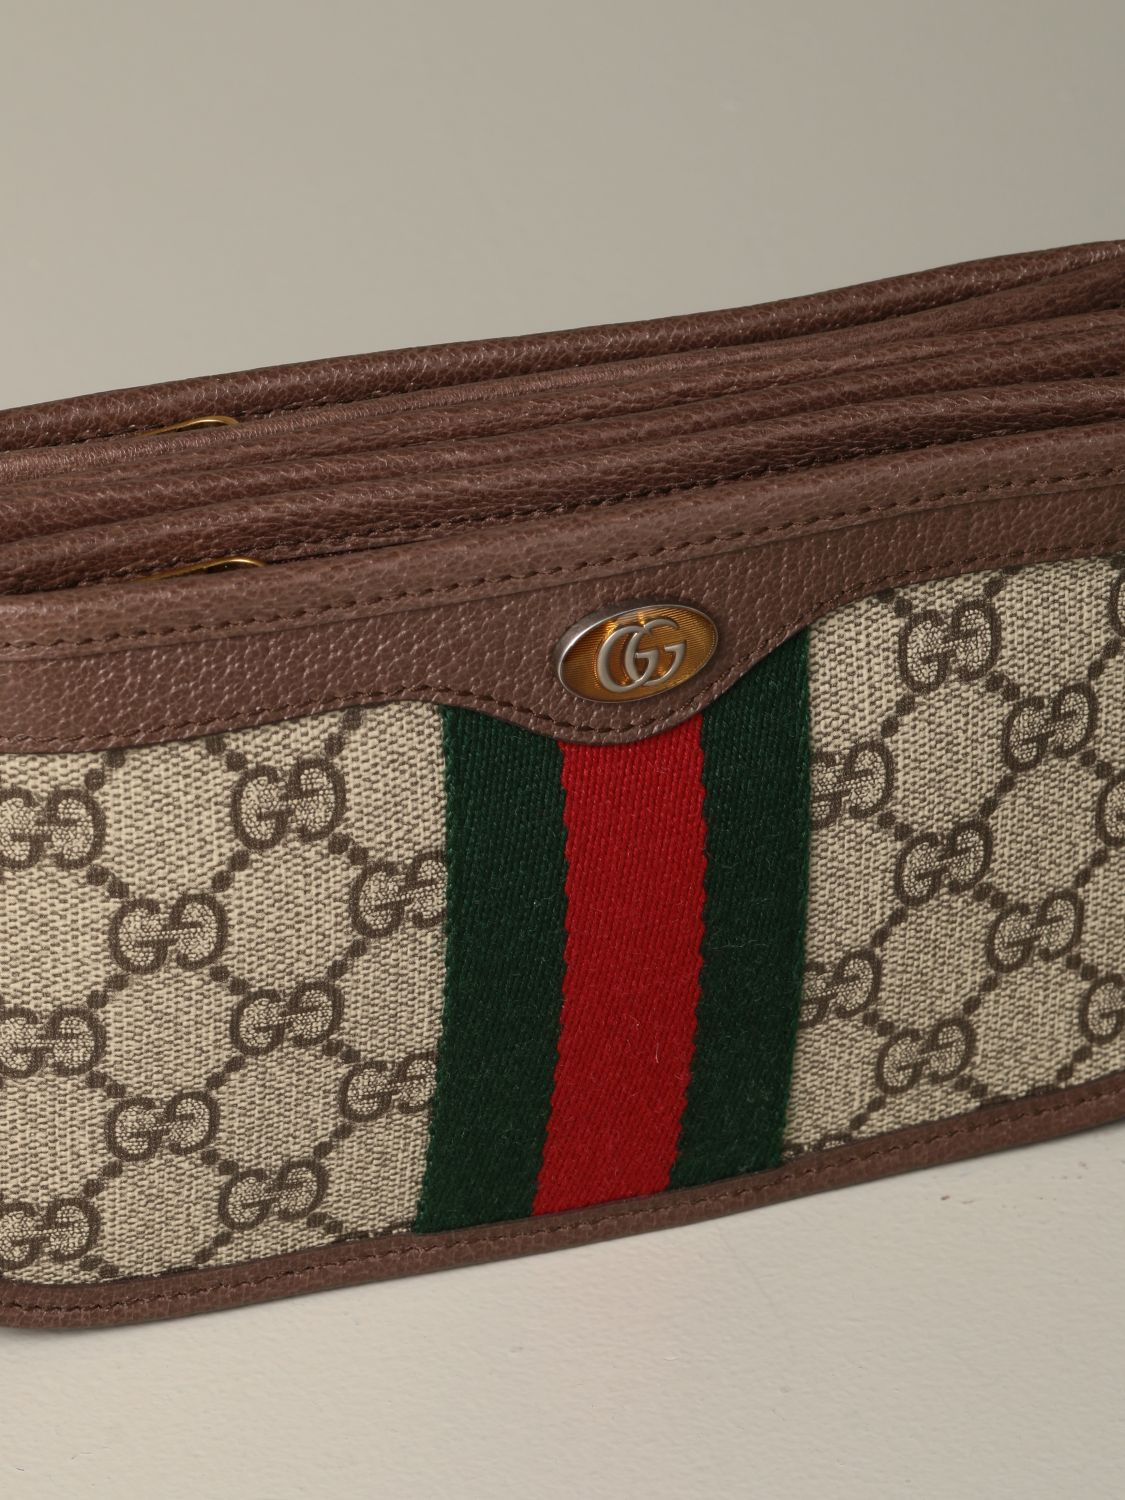 Belt bag Gucci: Ophidia Gucci GG Supreme shoulder bag beige 3